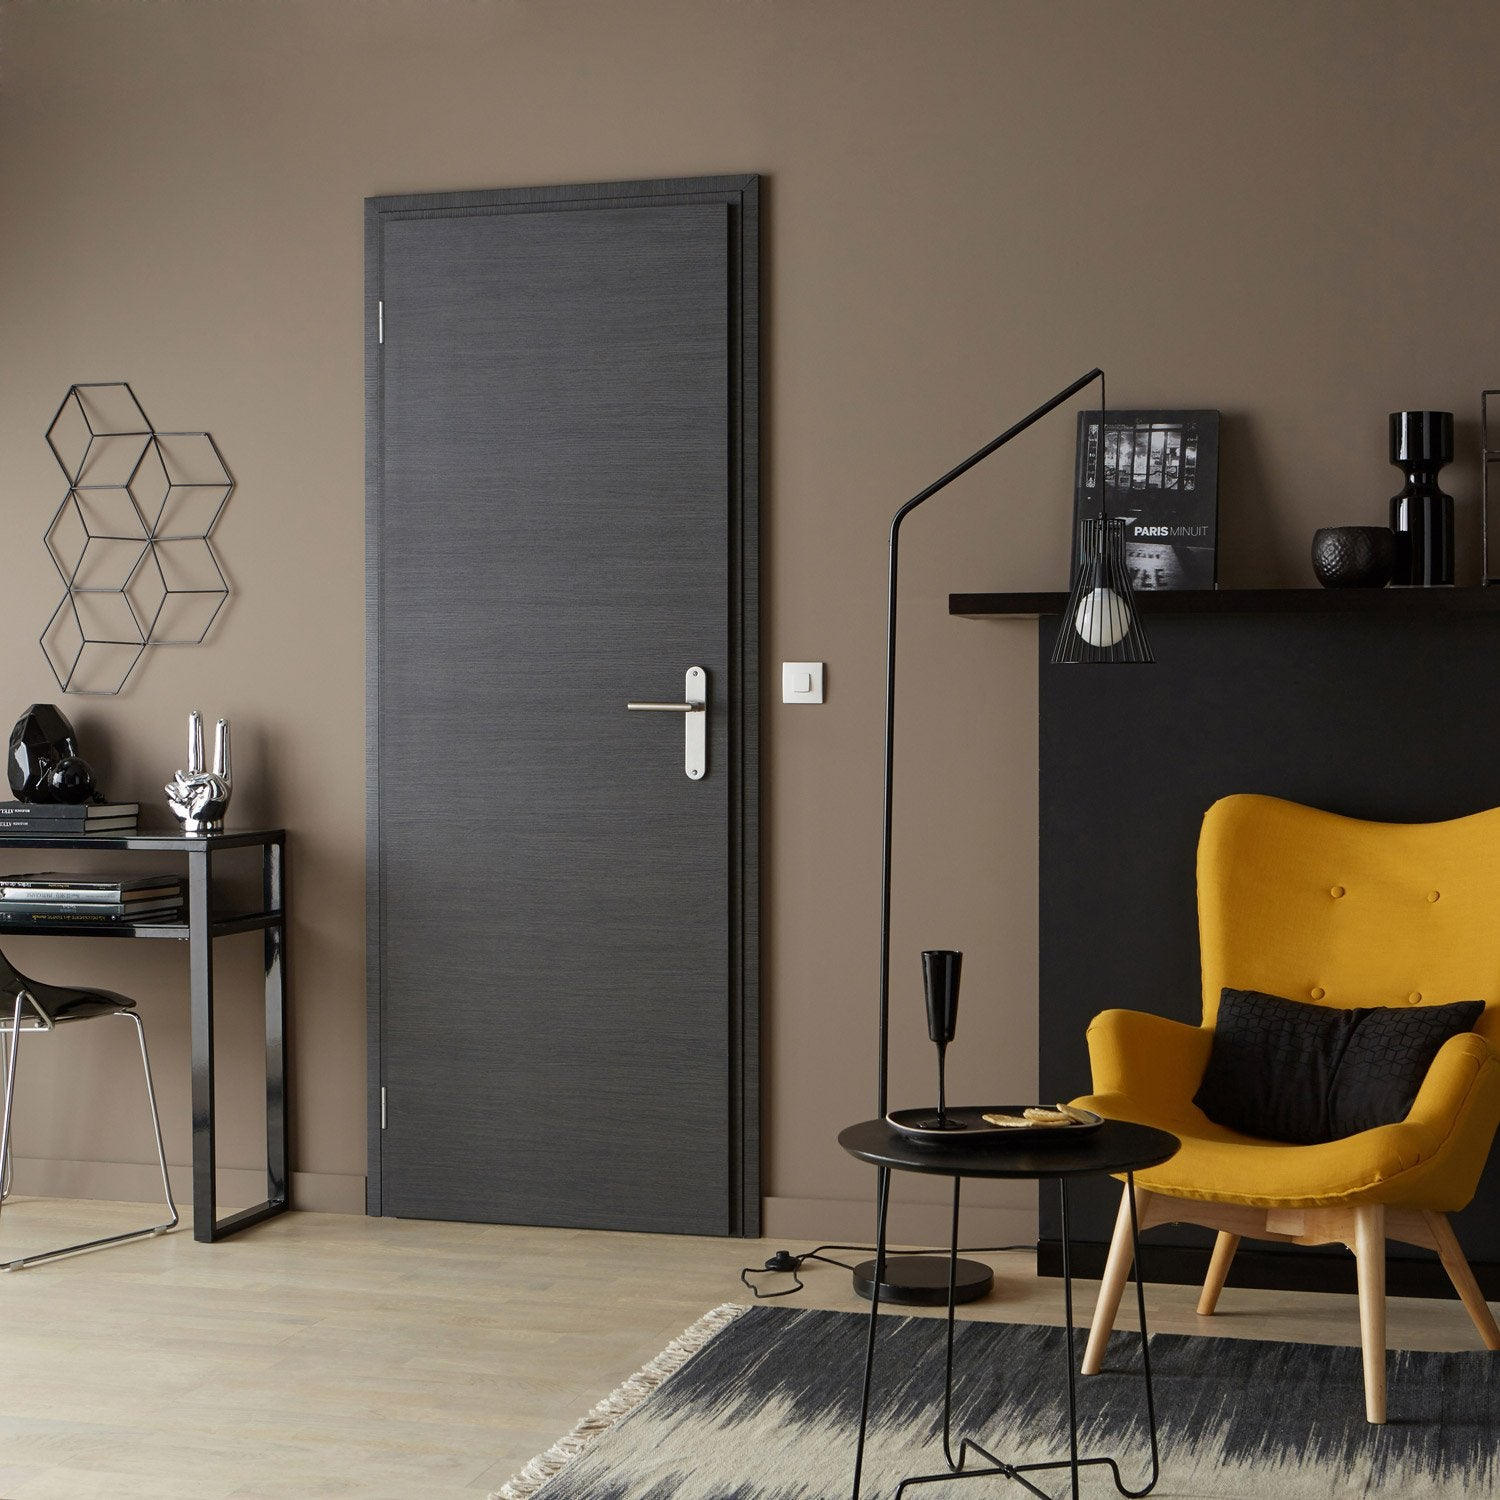 bloc porte interieur leroy merlin duune porte pliante intrieure with bloc porte interieur leroy. Black Bedroom Furniture Sets. Home Design Ideas